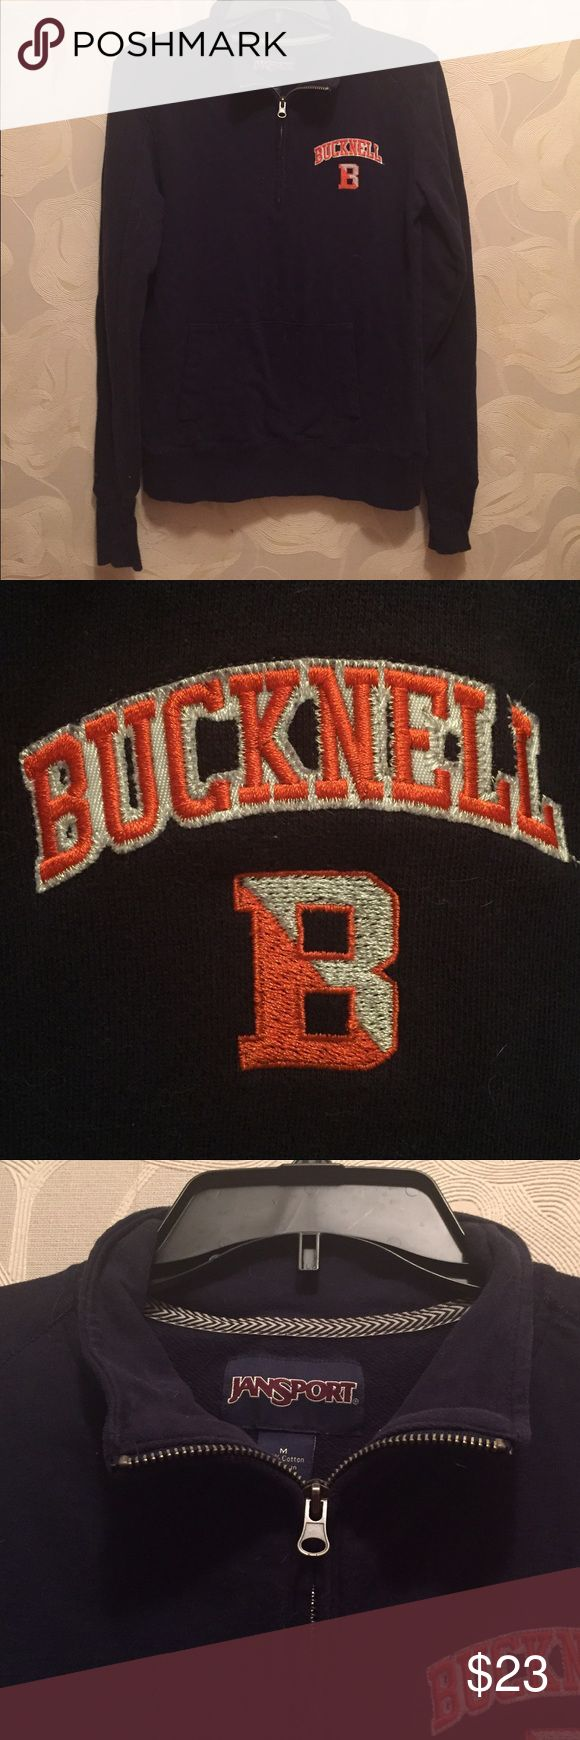 Bucknell University Half Zip Medium Bucknell University navy half zip with bucknell and B logo on front. Size medium. Pockets in front and thumb holes on sleeves. Purchased august 2016 from school book store. Very good used condition! Always cold washed and air dried. Bucknell students often wear these to class. Smoke free home Jansport Tops